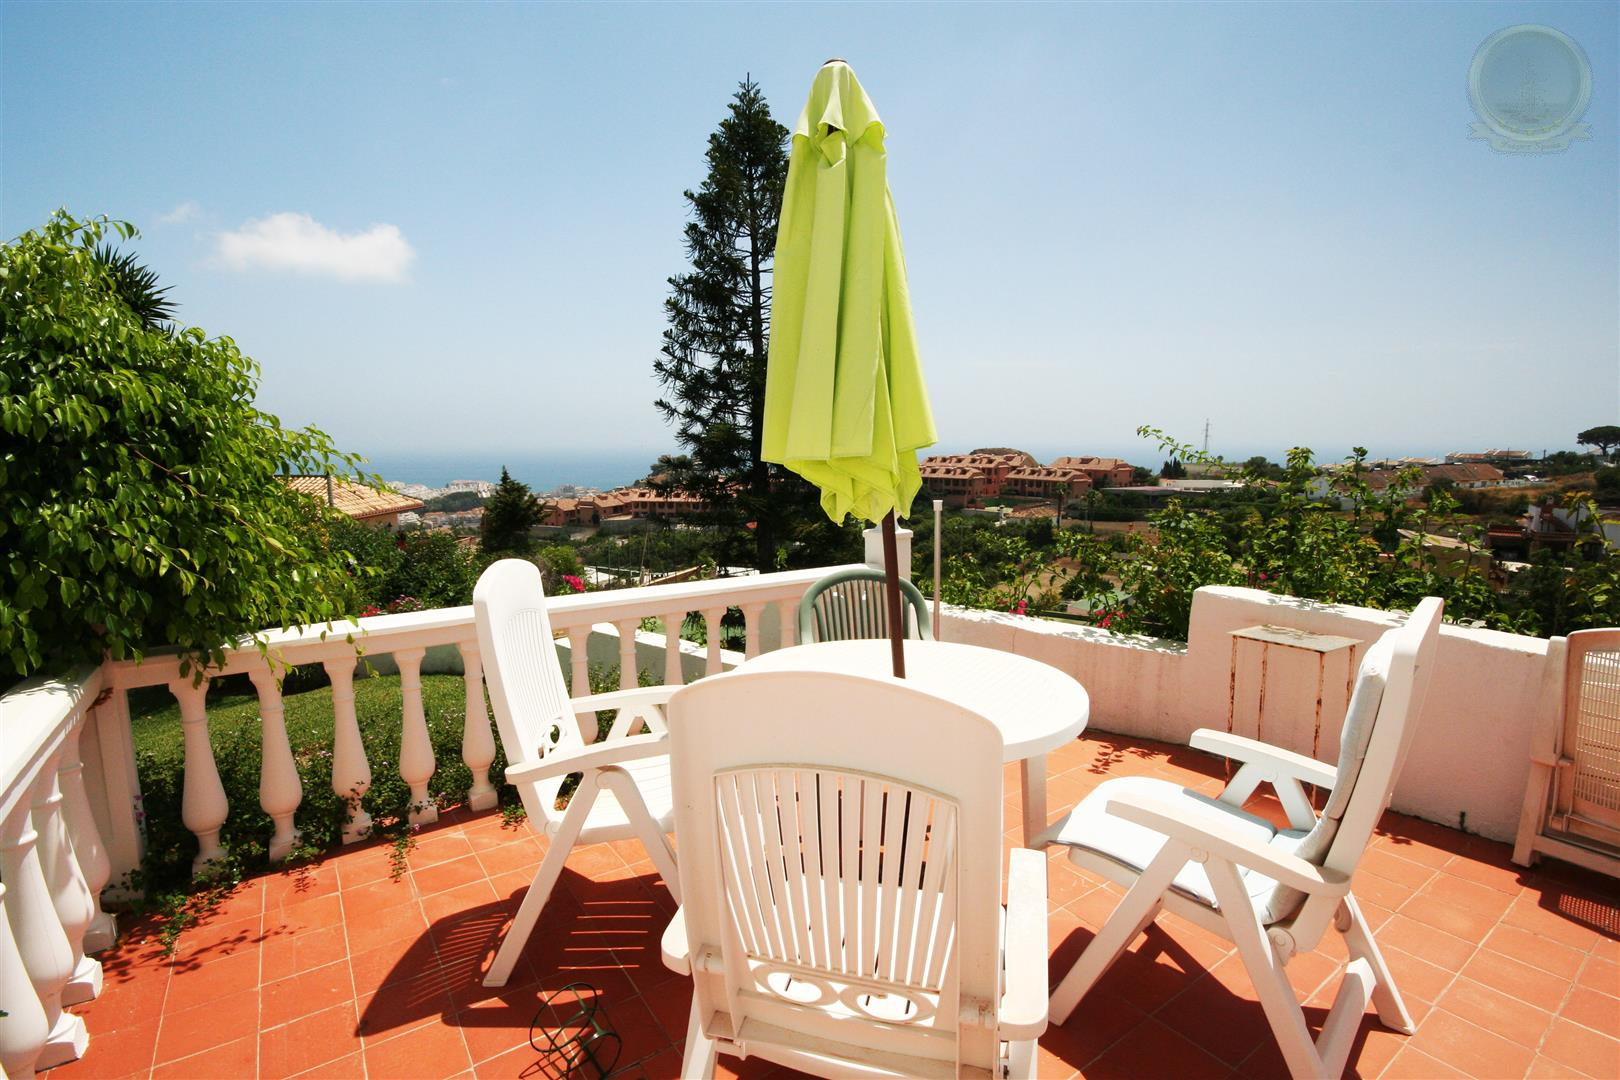 Villa for Sale in Benalmadena Pueblo - terrace area